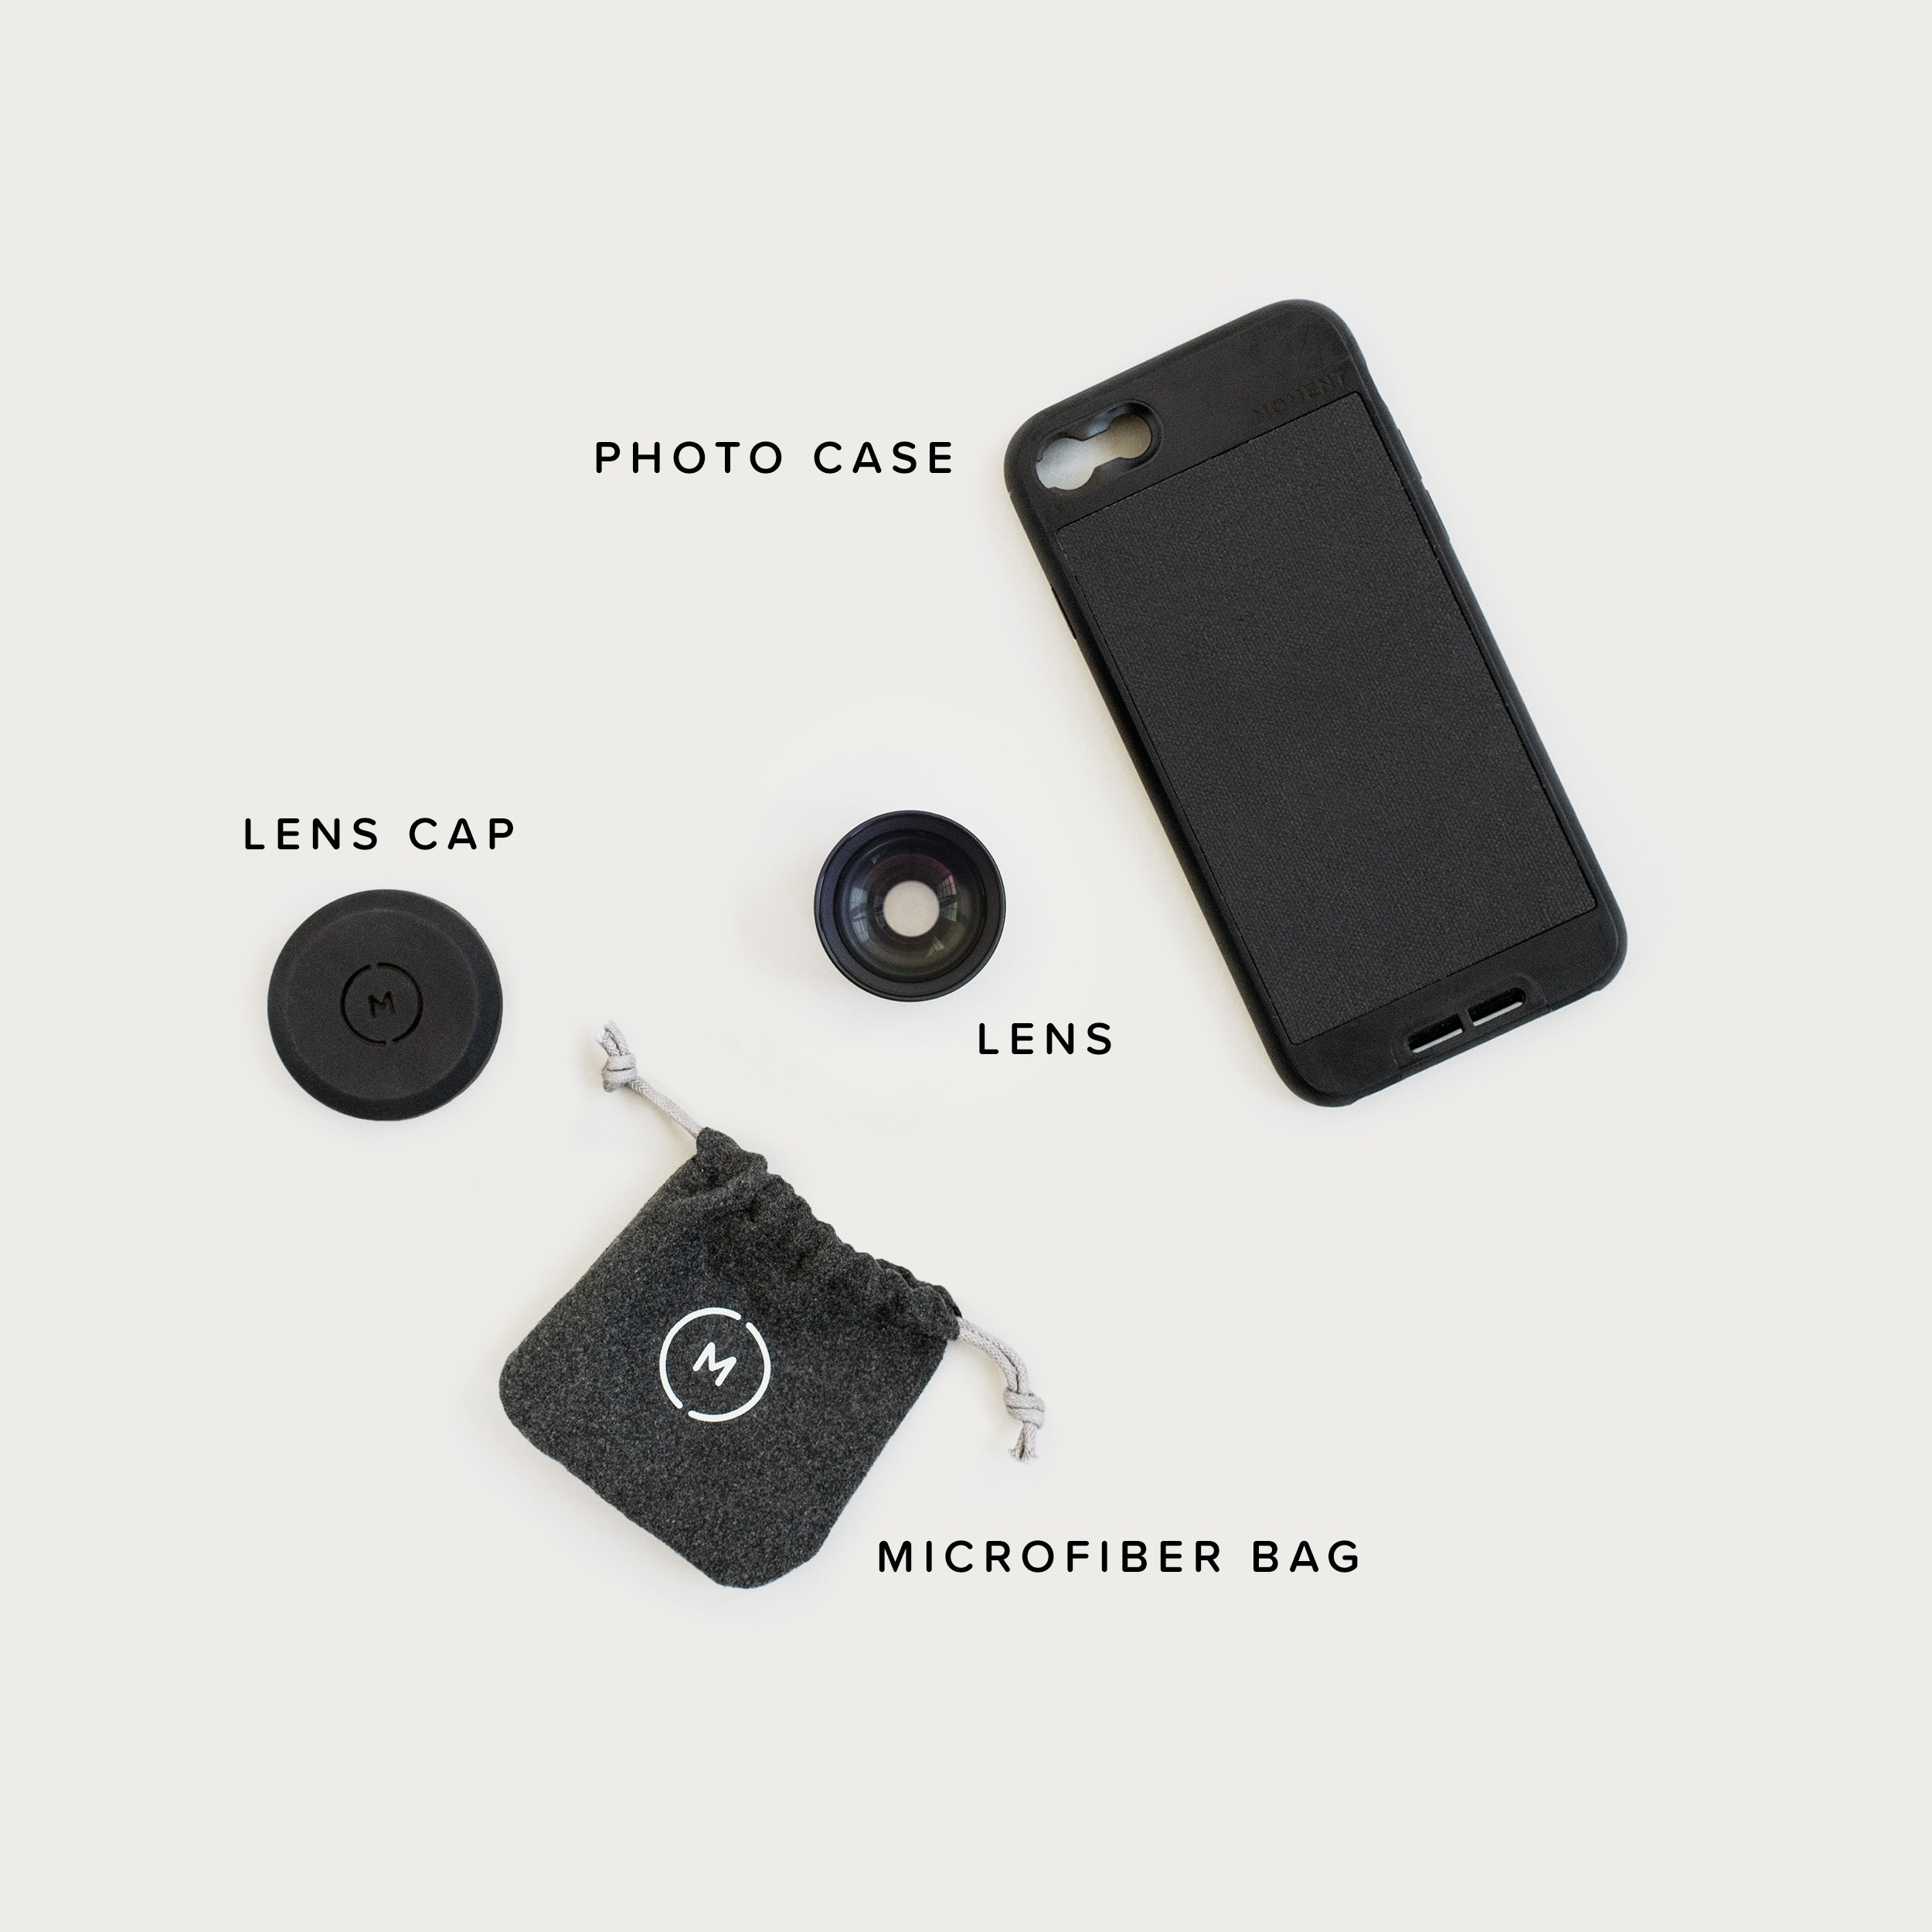 iPhone 6 Plus Case with Telephoto Lens Kit || Moment Black Canvas Photo Case plus Tele Lens || Best iphone zoom attachment lens with thin protective case. by Moment (Image #7)